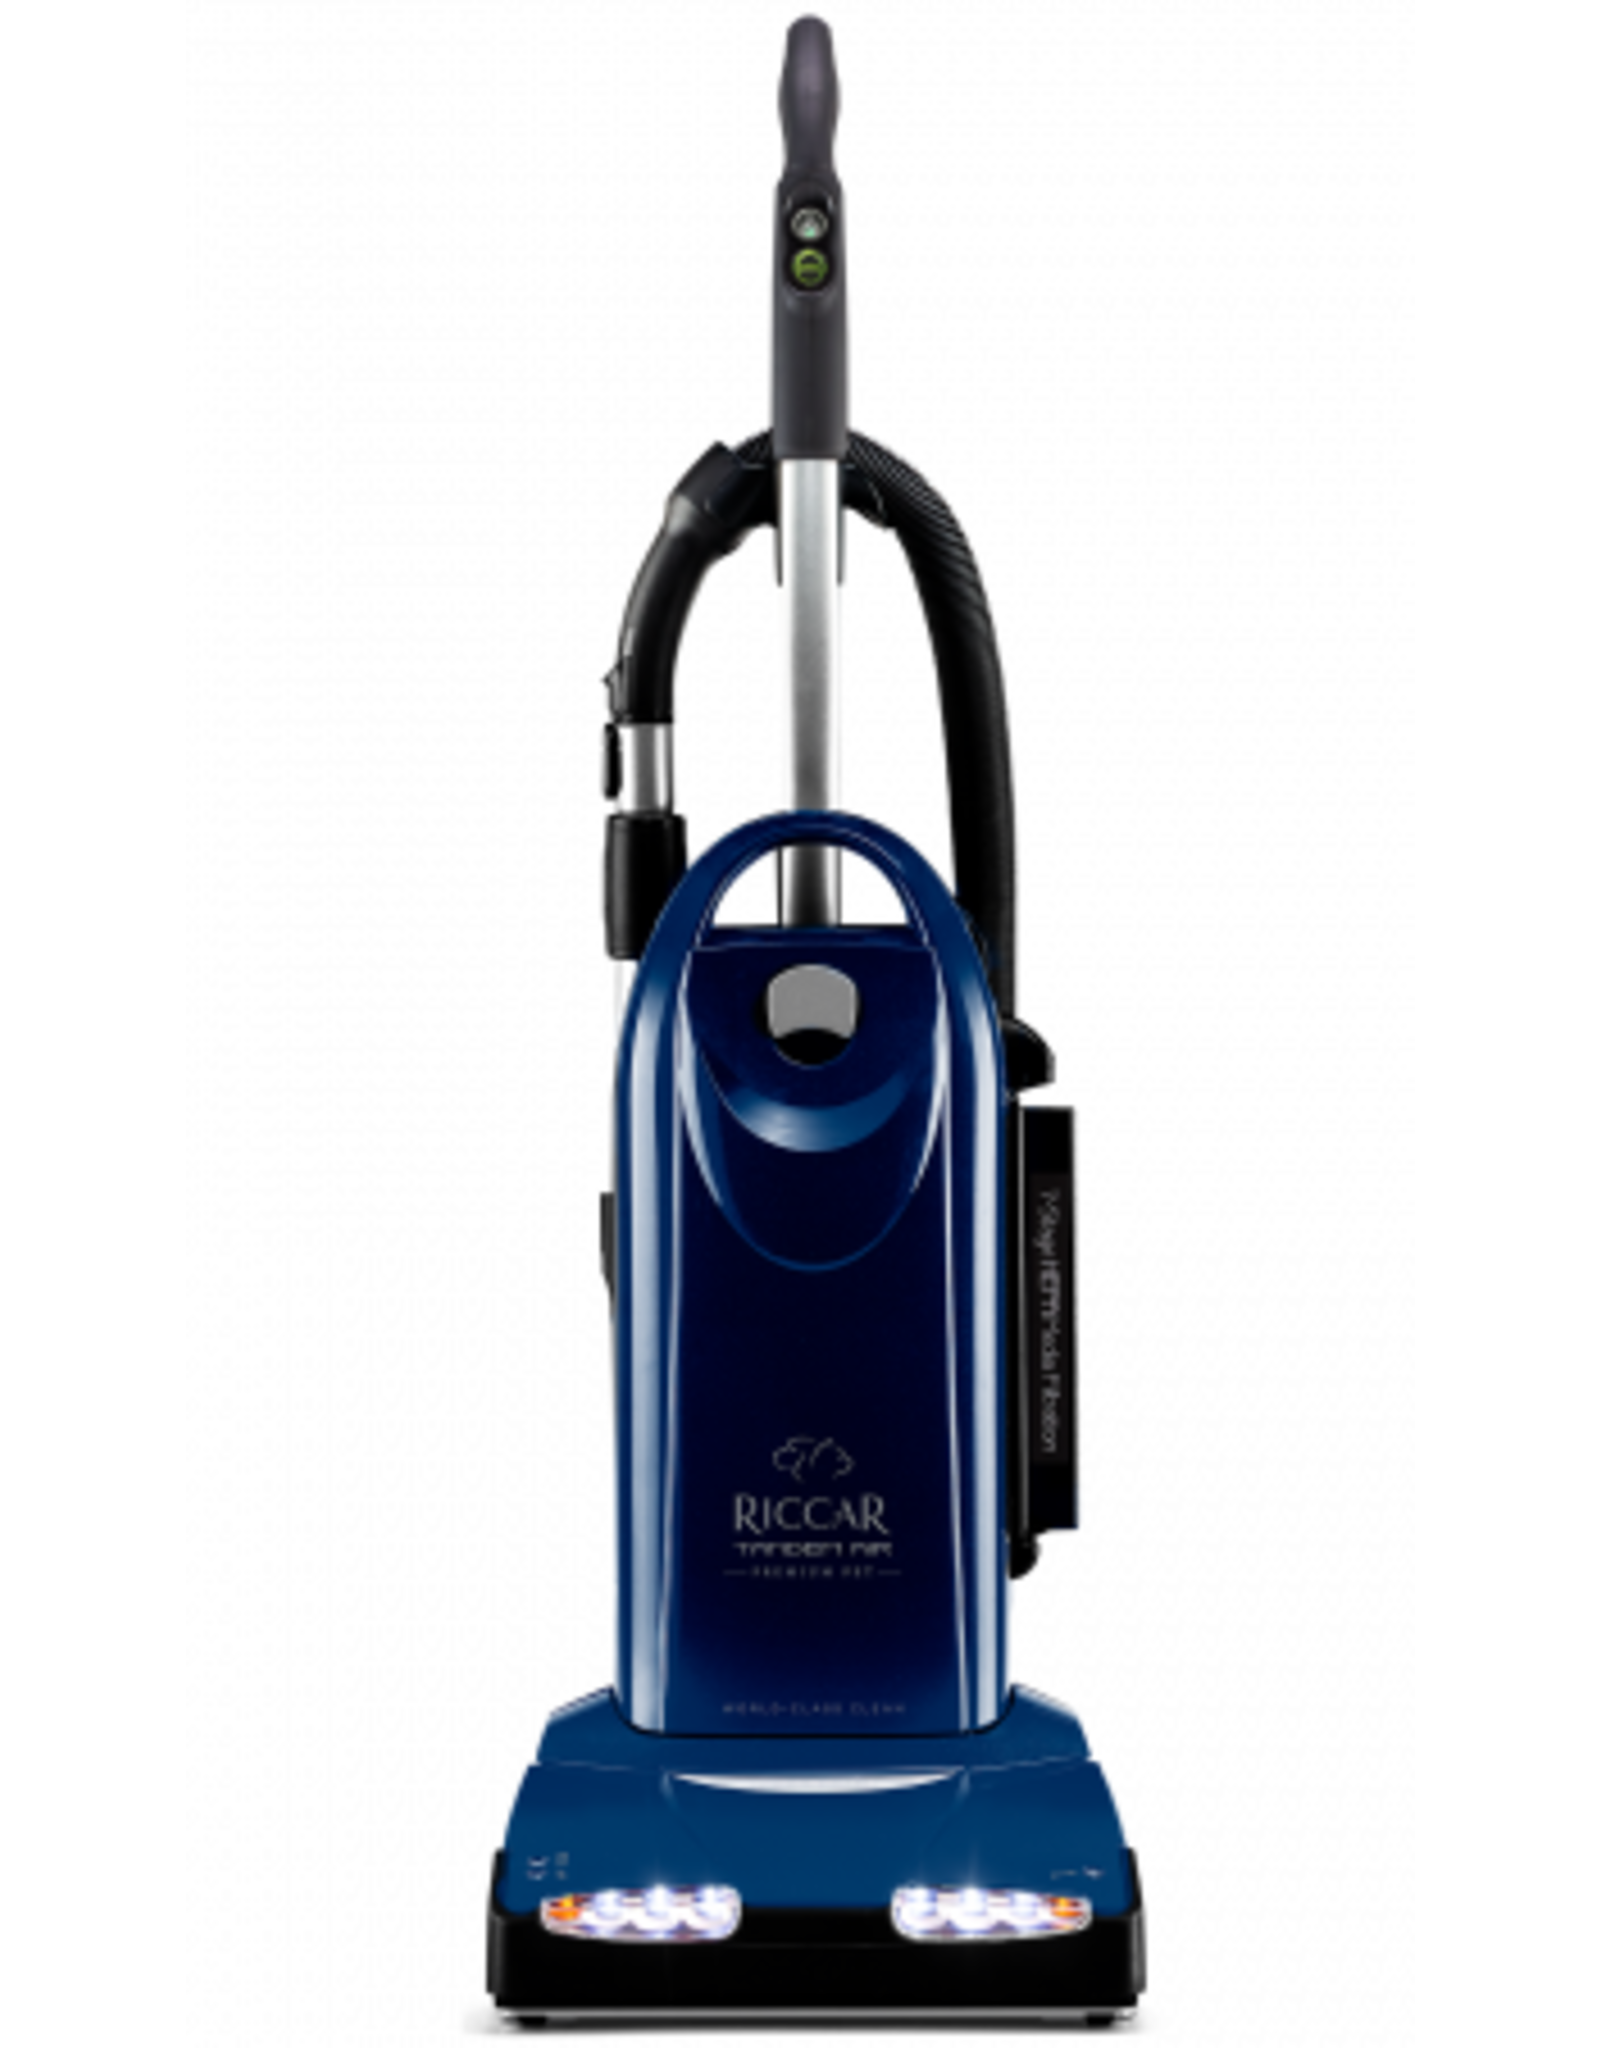 Riccar Riccar 40 Series Premium Tandem Air Upright Vacuum